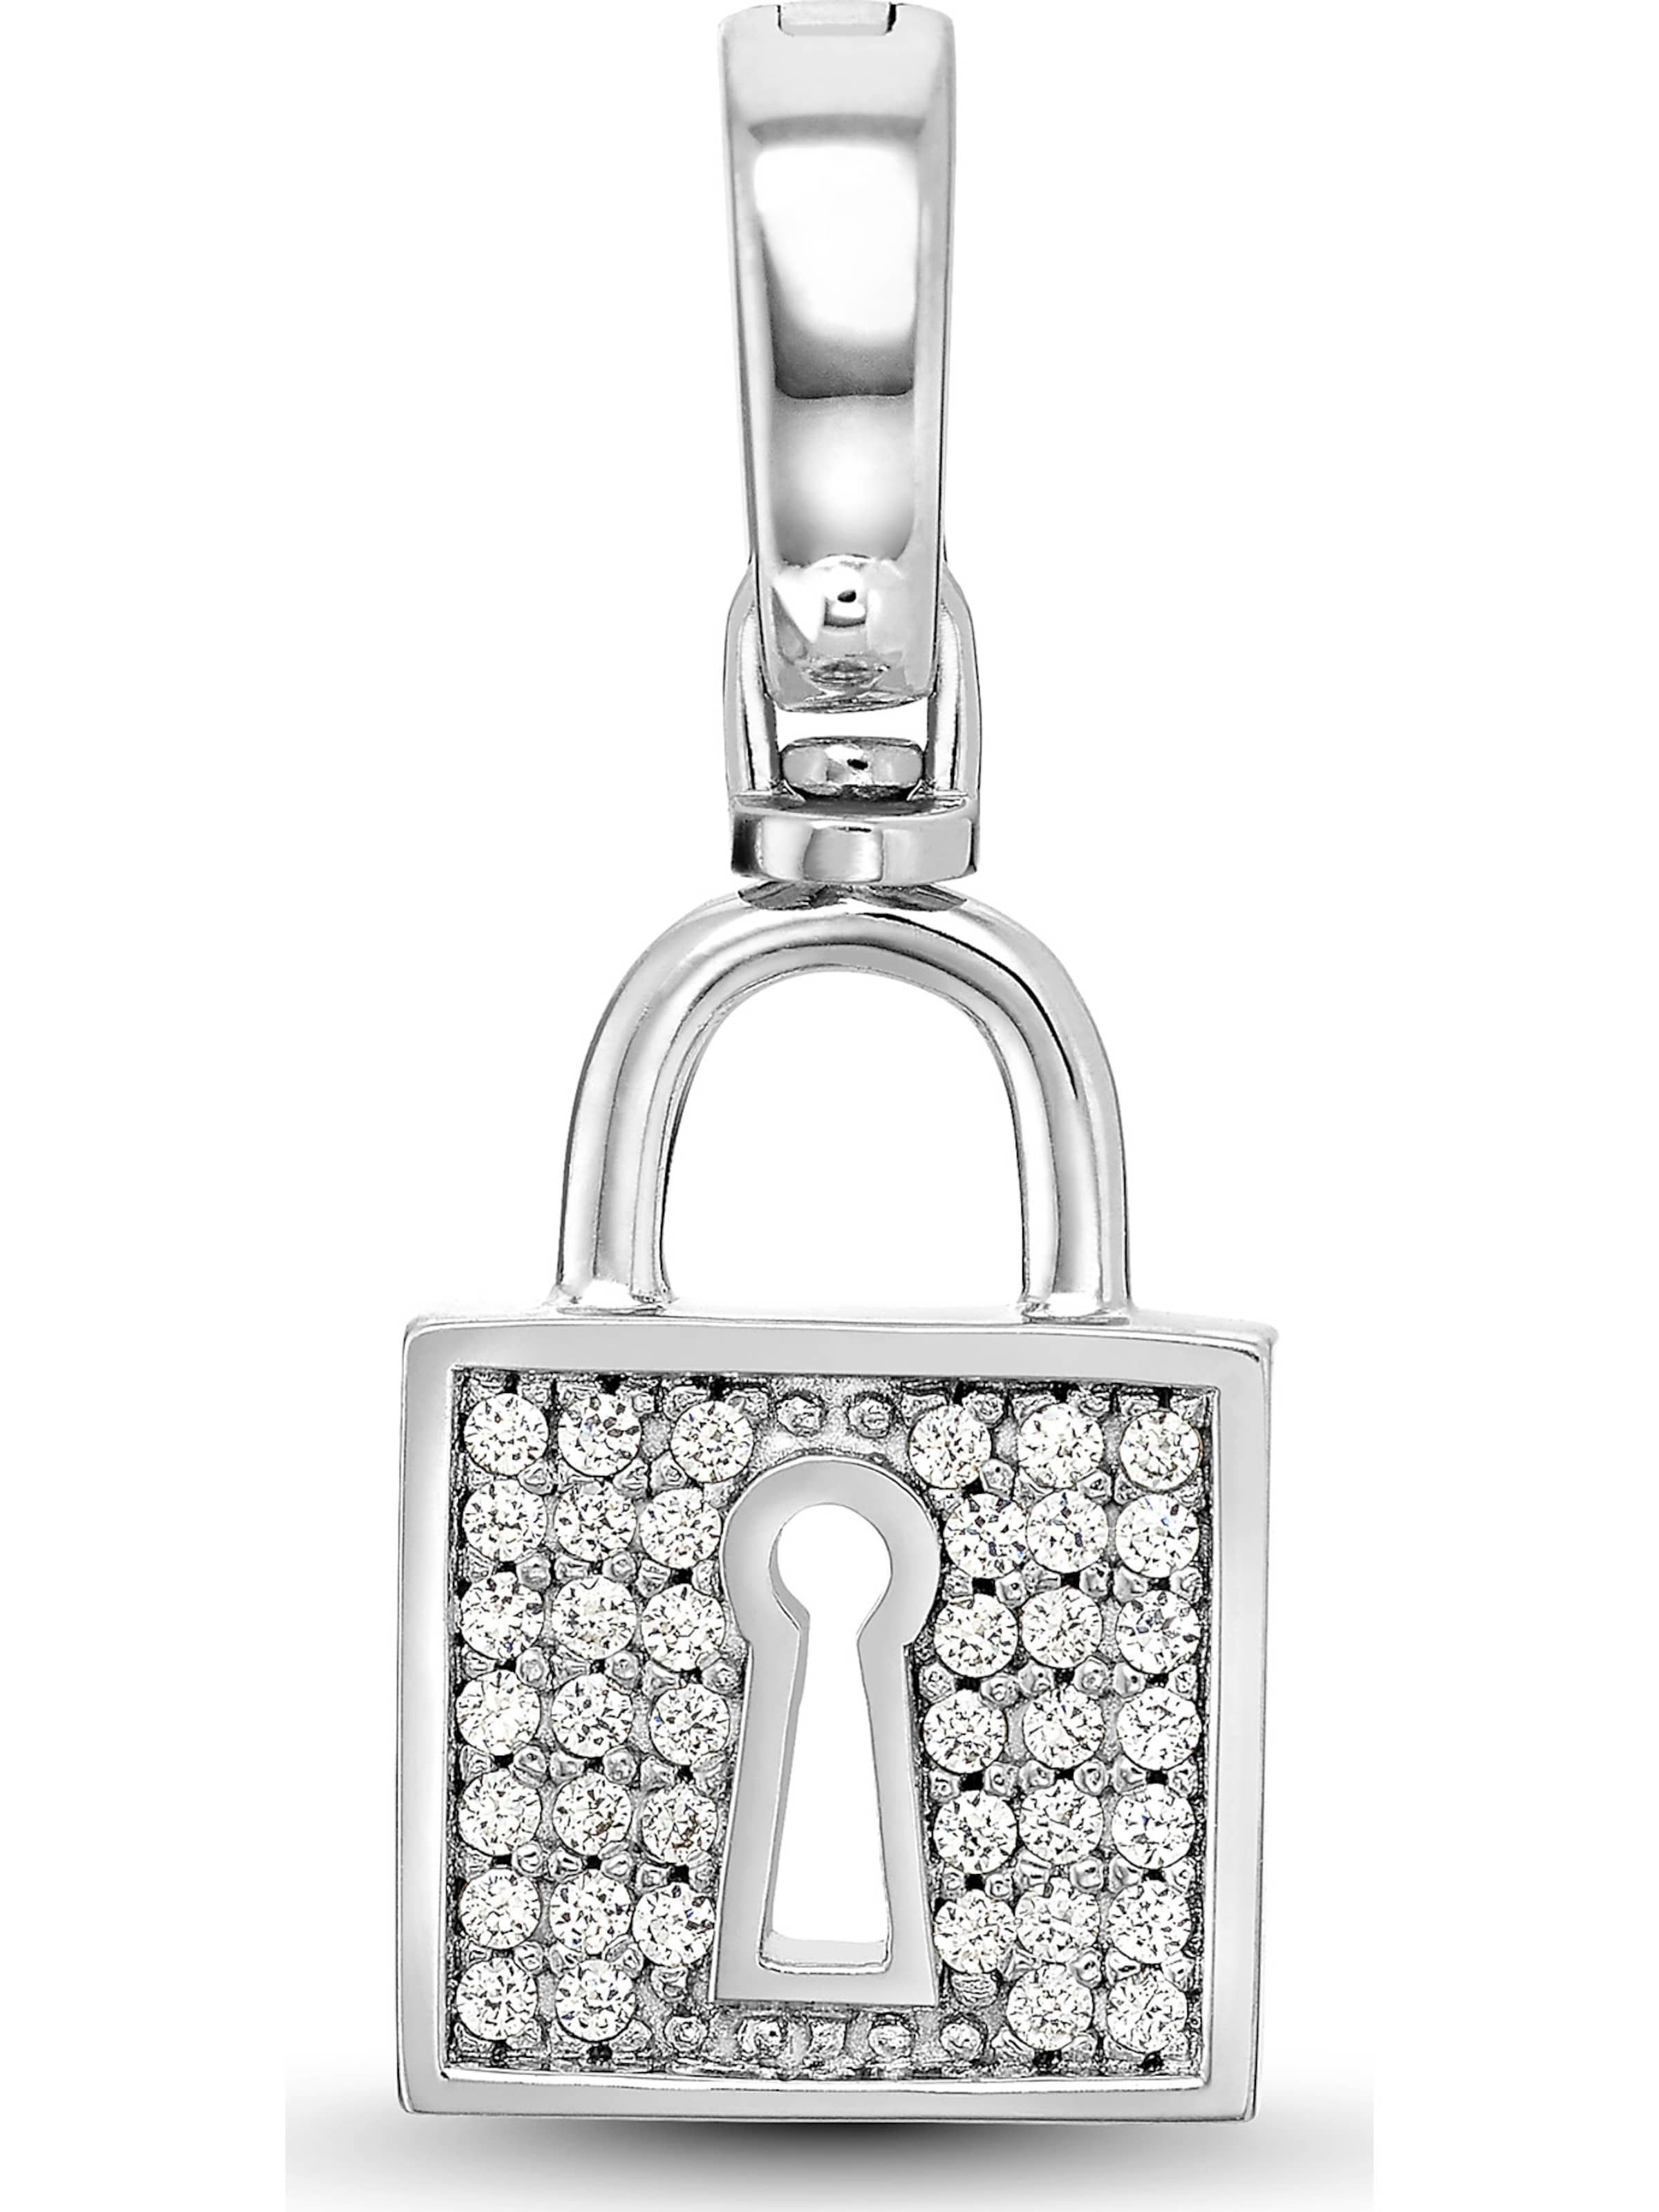 Charm In Silber Jette Charm Jette In Silber YEeW2DH9I